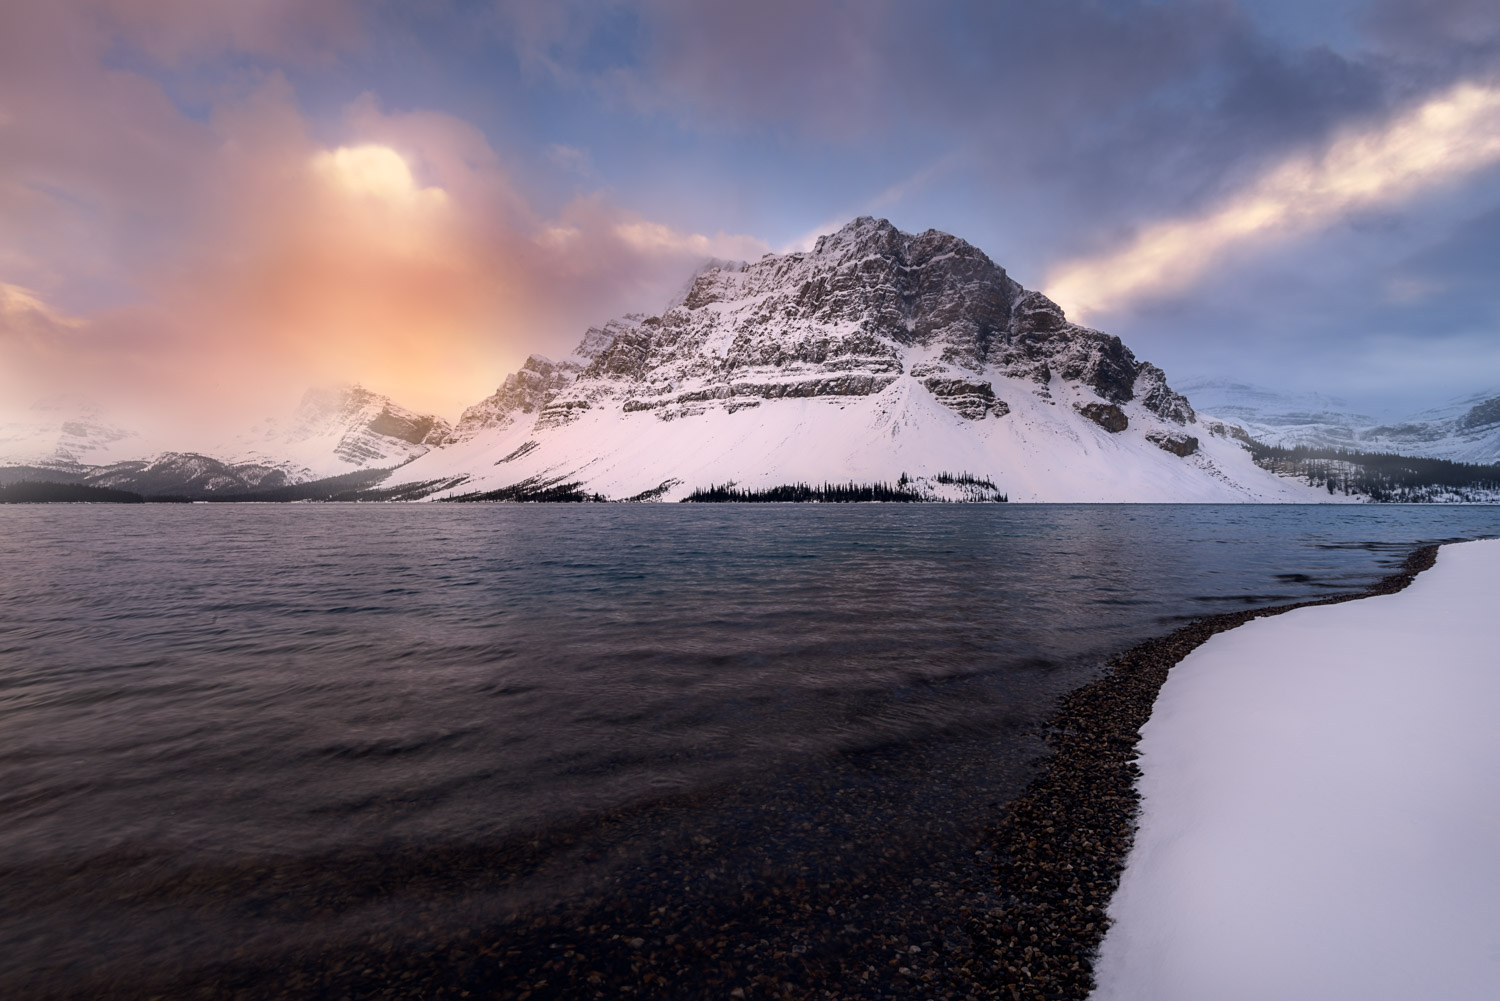 Bow Lake, Banff National Park, Icefields Parkway, Alberta, Canada